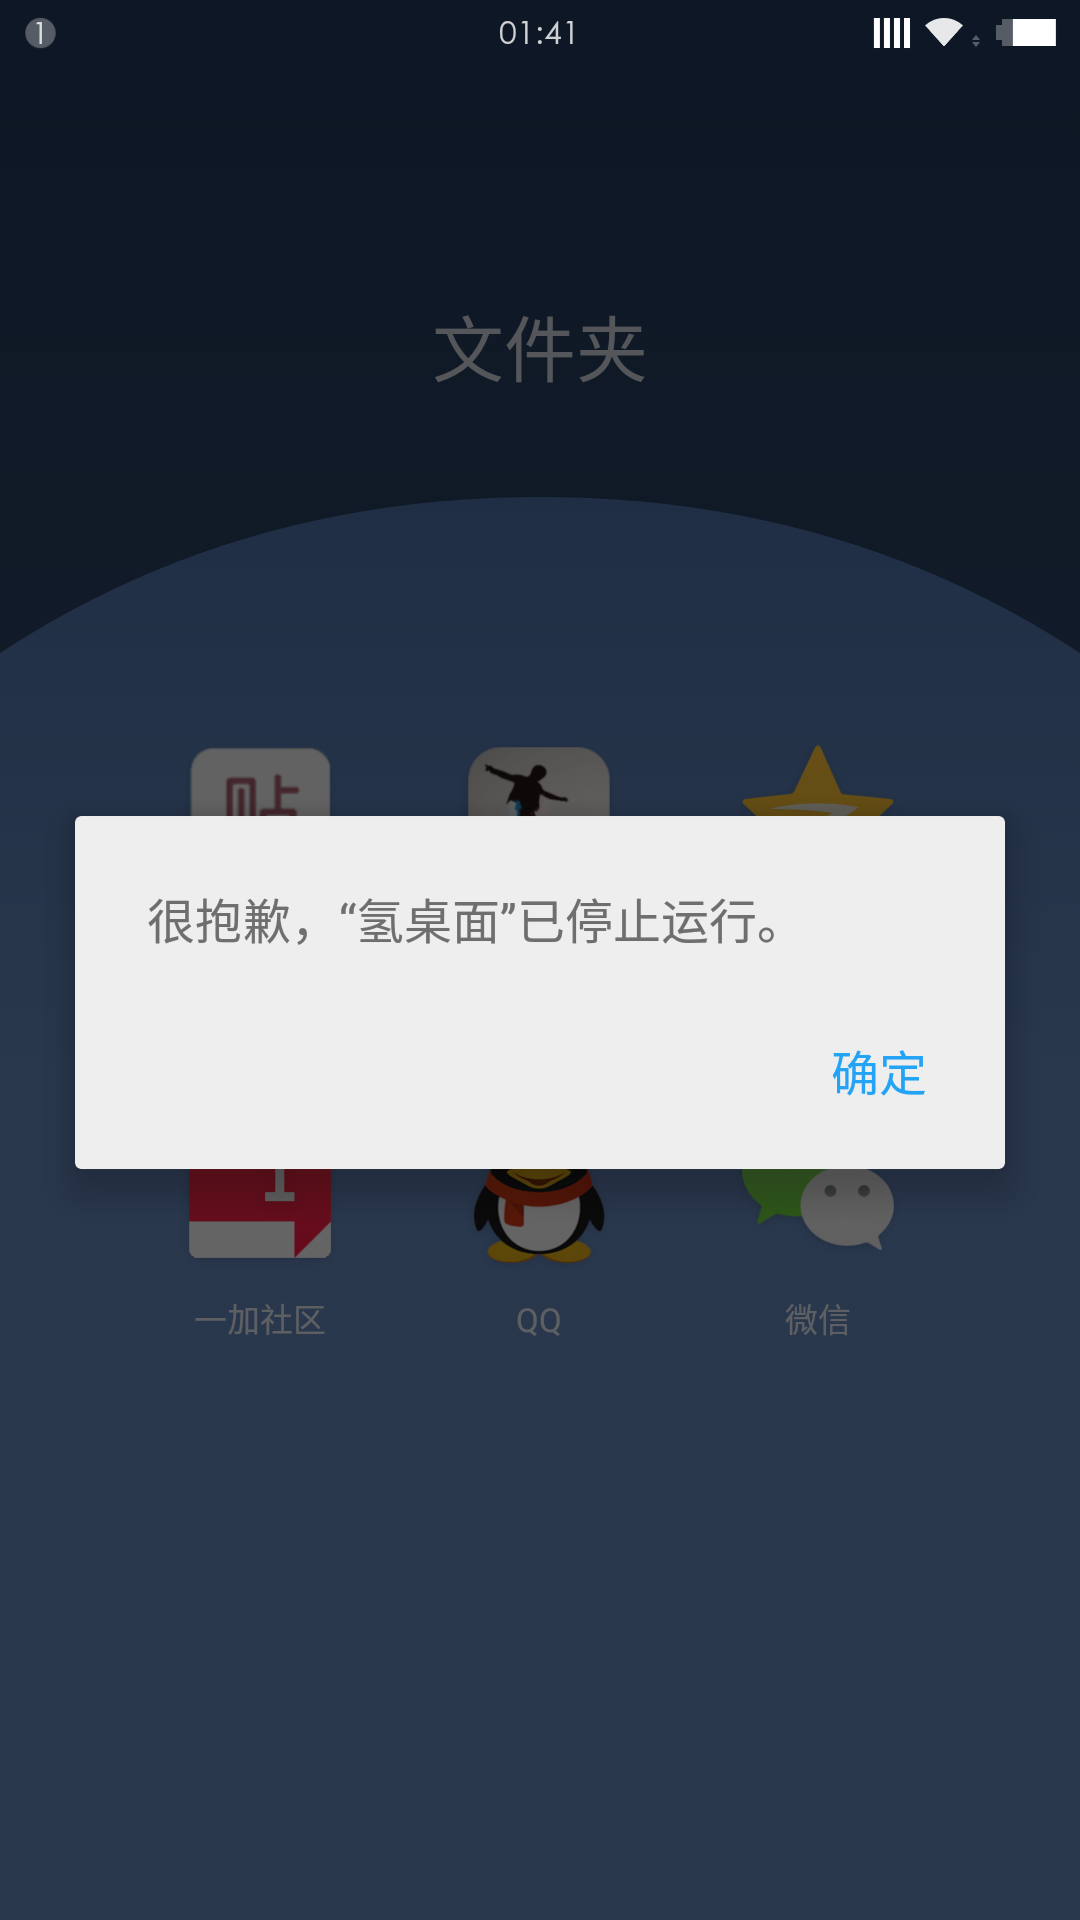 Screenshot_2015-08-23-01-41-08.png